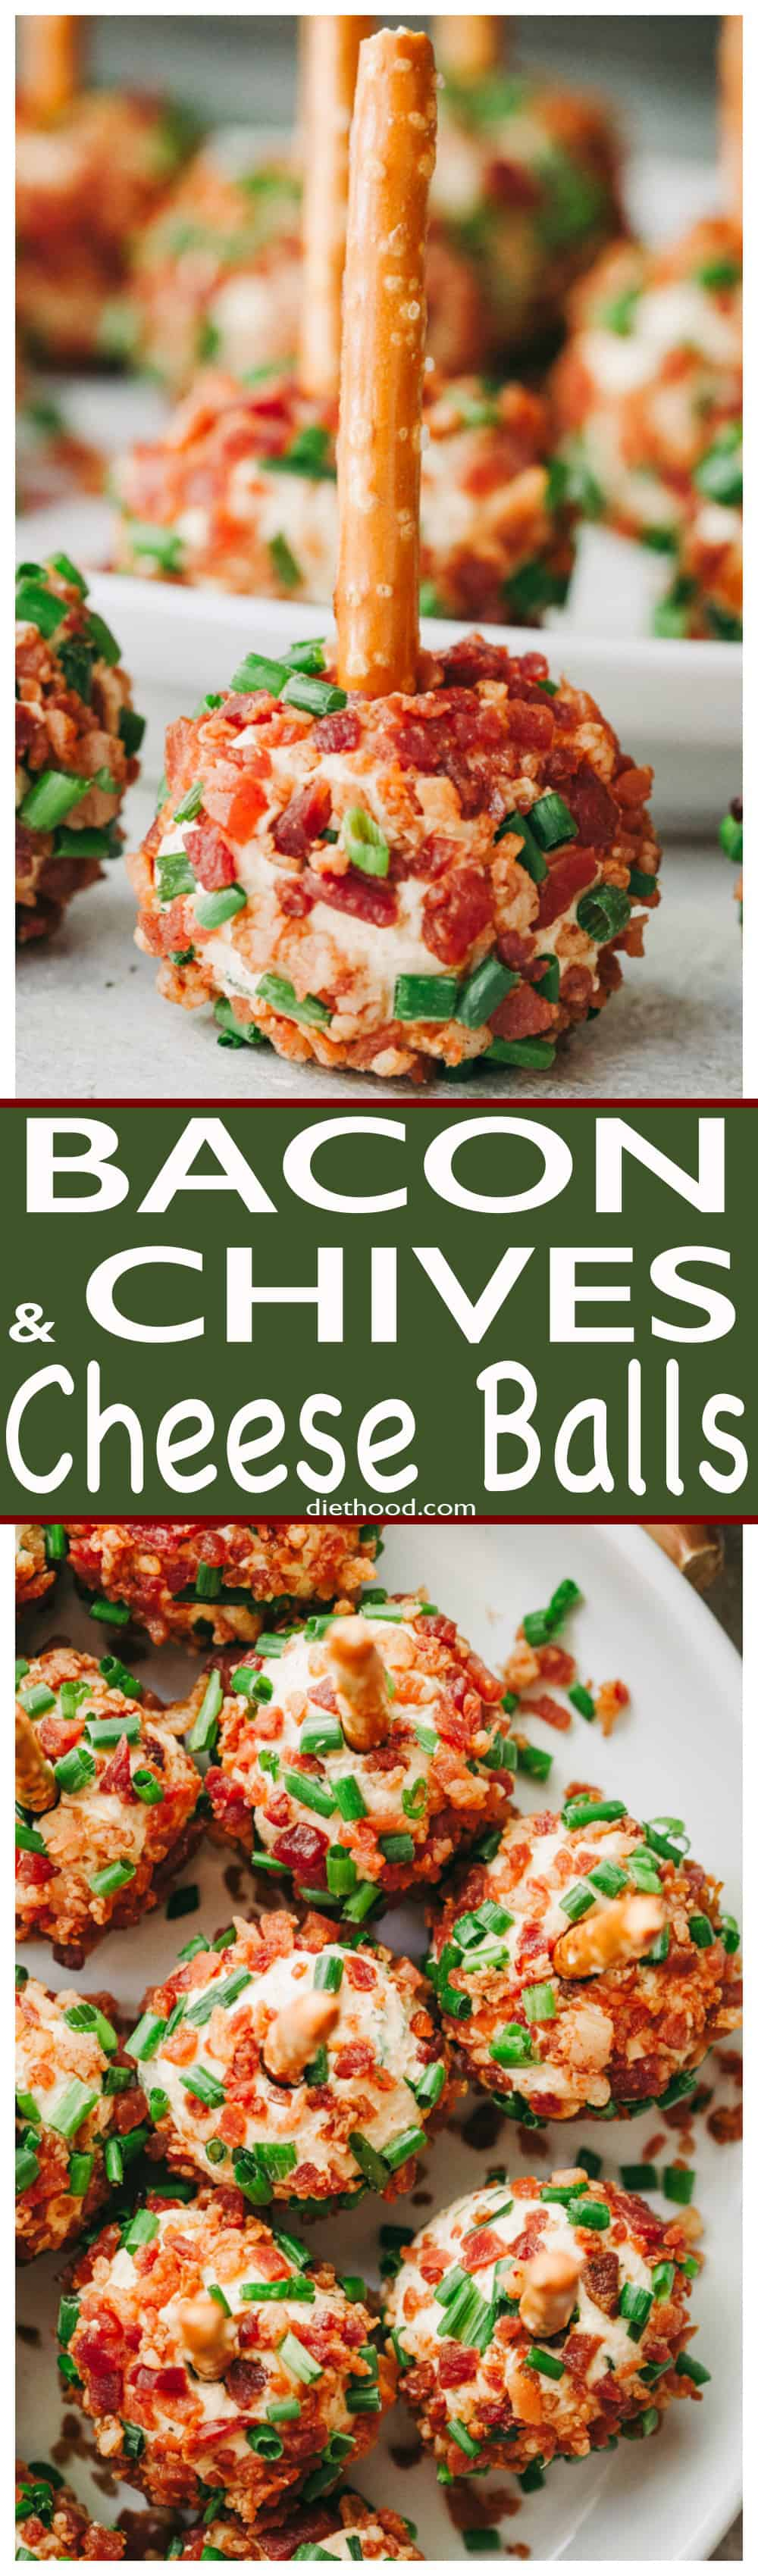 Bacon and Chives Cheese Balls Recipe - Easy, cheesy and bacony bite-size appetizer ideal for your Holiday parties or even game days! #bacon #holidays #appetizers #cheese